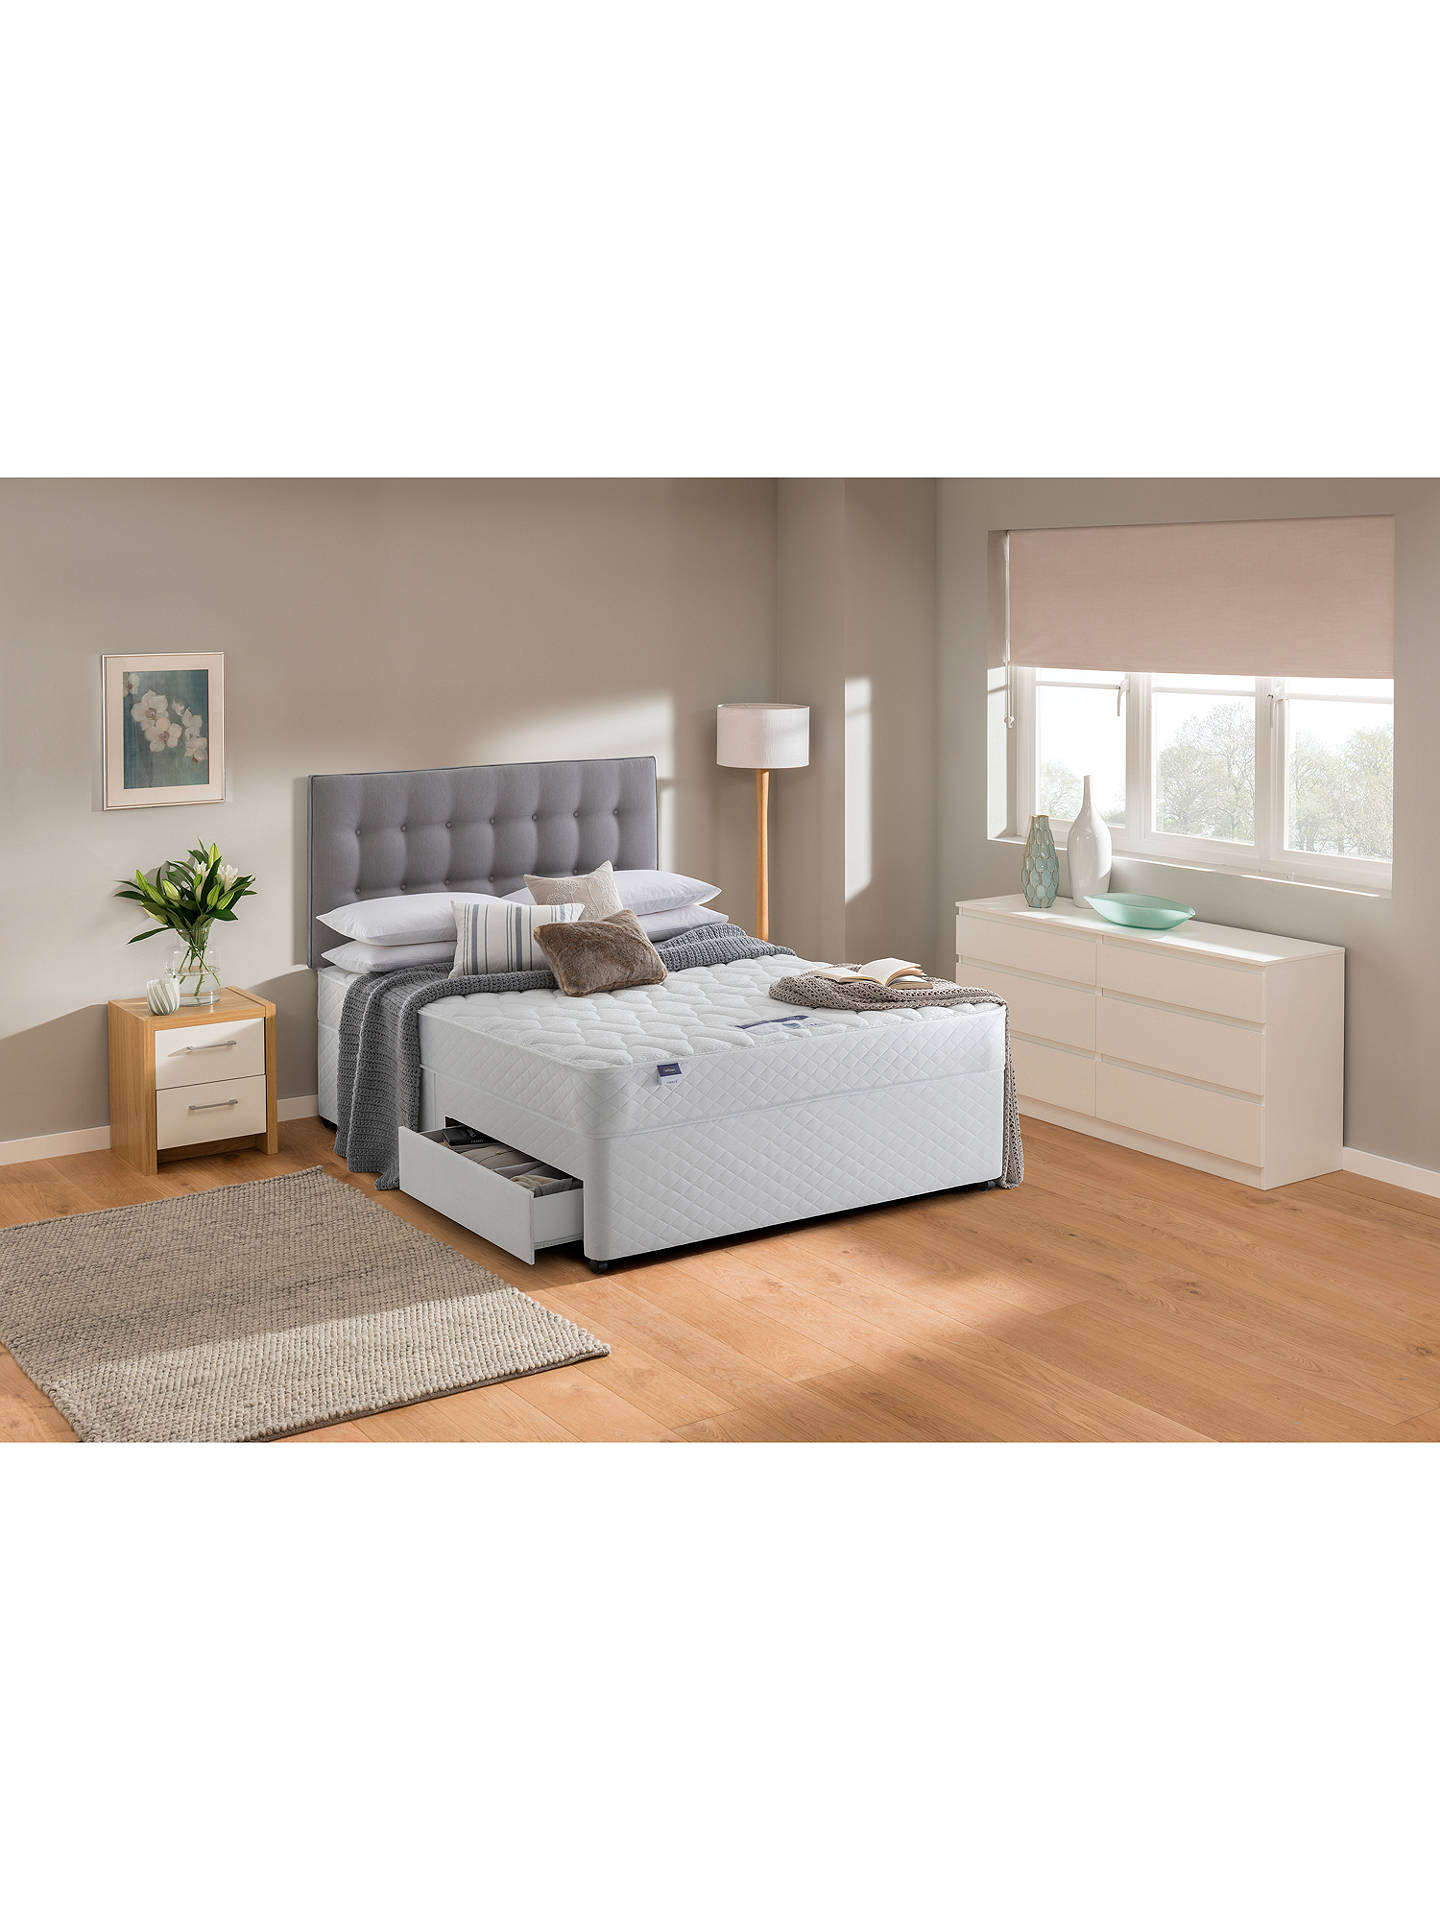 Buy Silentnight Sleep Soundly Miracoil Comfort Divan Base and Mattress Set, FSC-Certified (Picea Abies, Chipboard), Firm, Super King Size Online at johnlewis.com